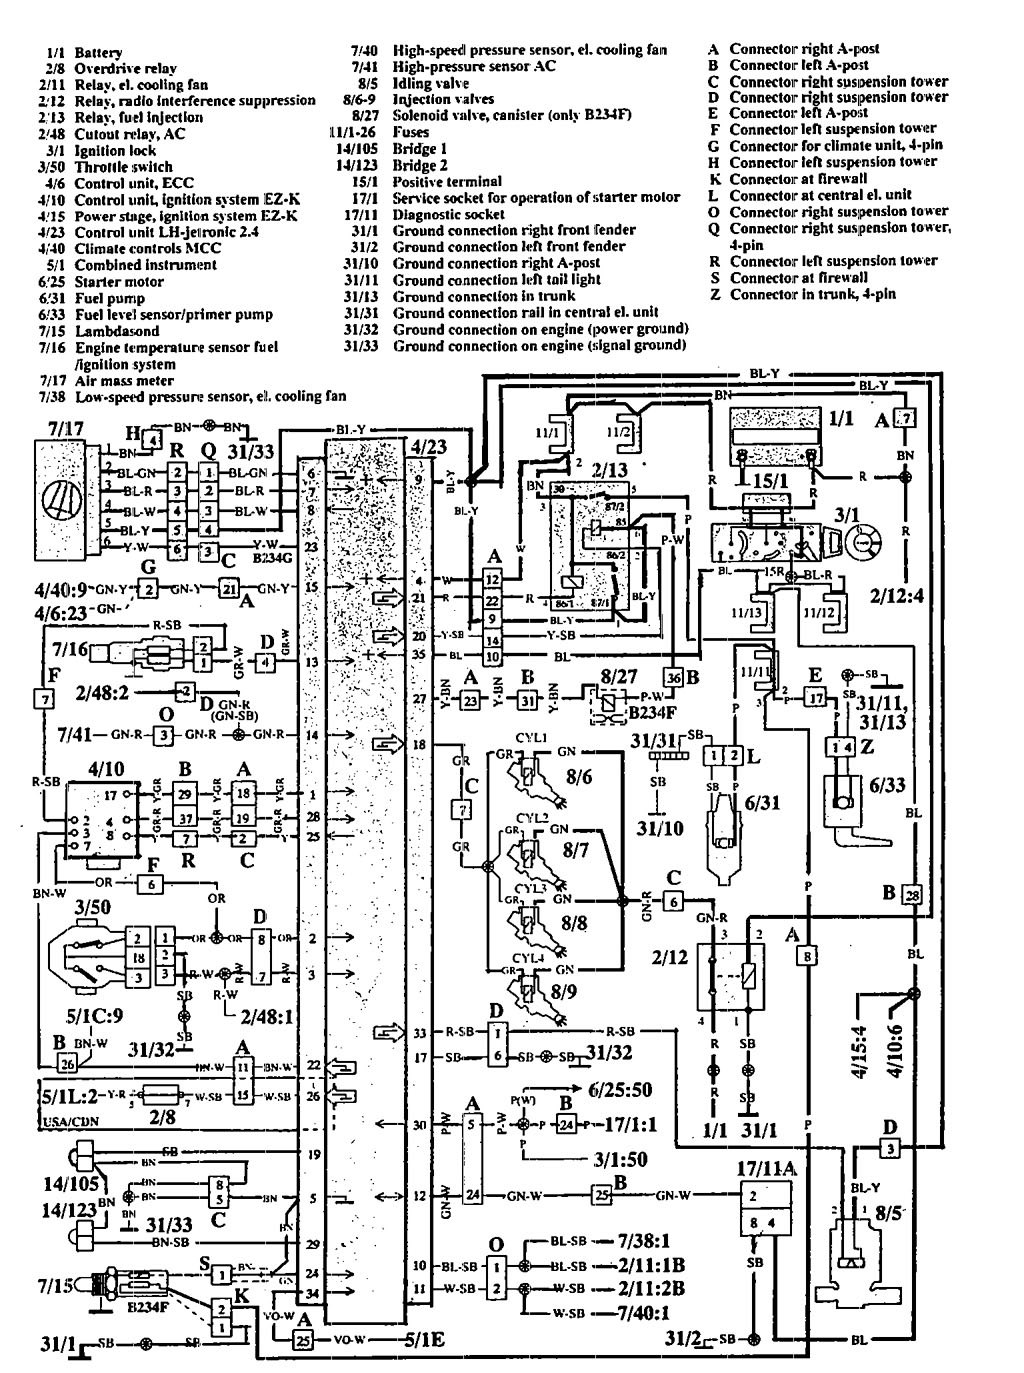 Volvo 940 1995 Fuse Box Diagram Vehicle Wiring Diagrams Location 1994 Info U2022 960 Station Wagon 1993